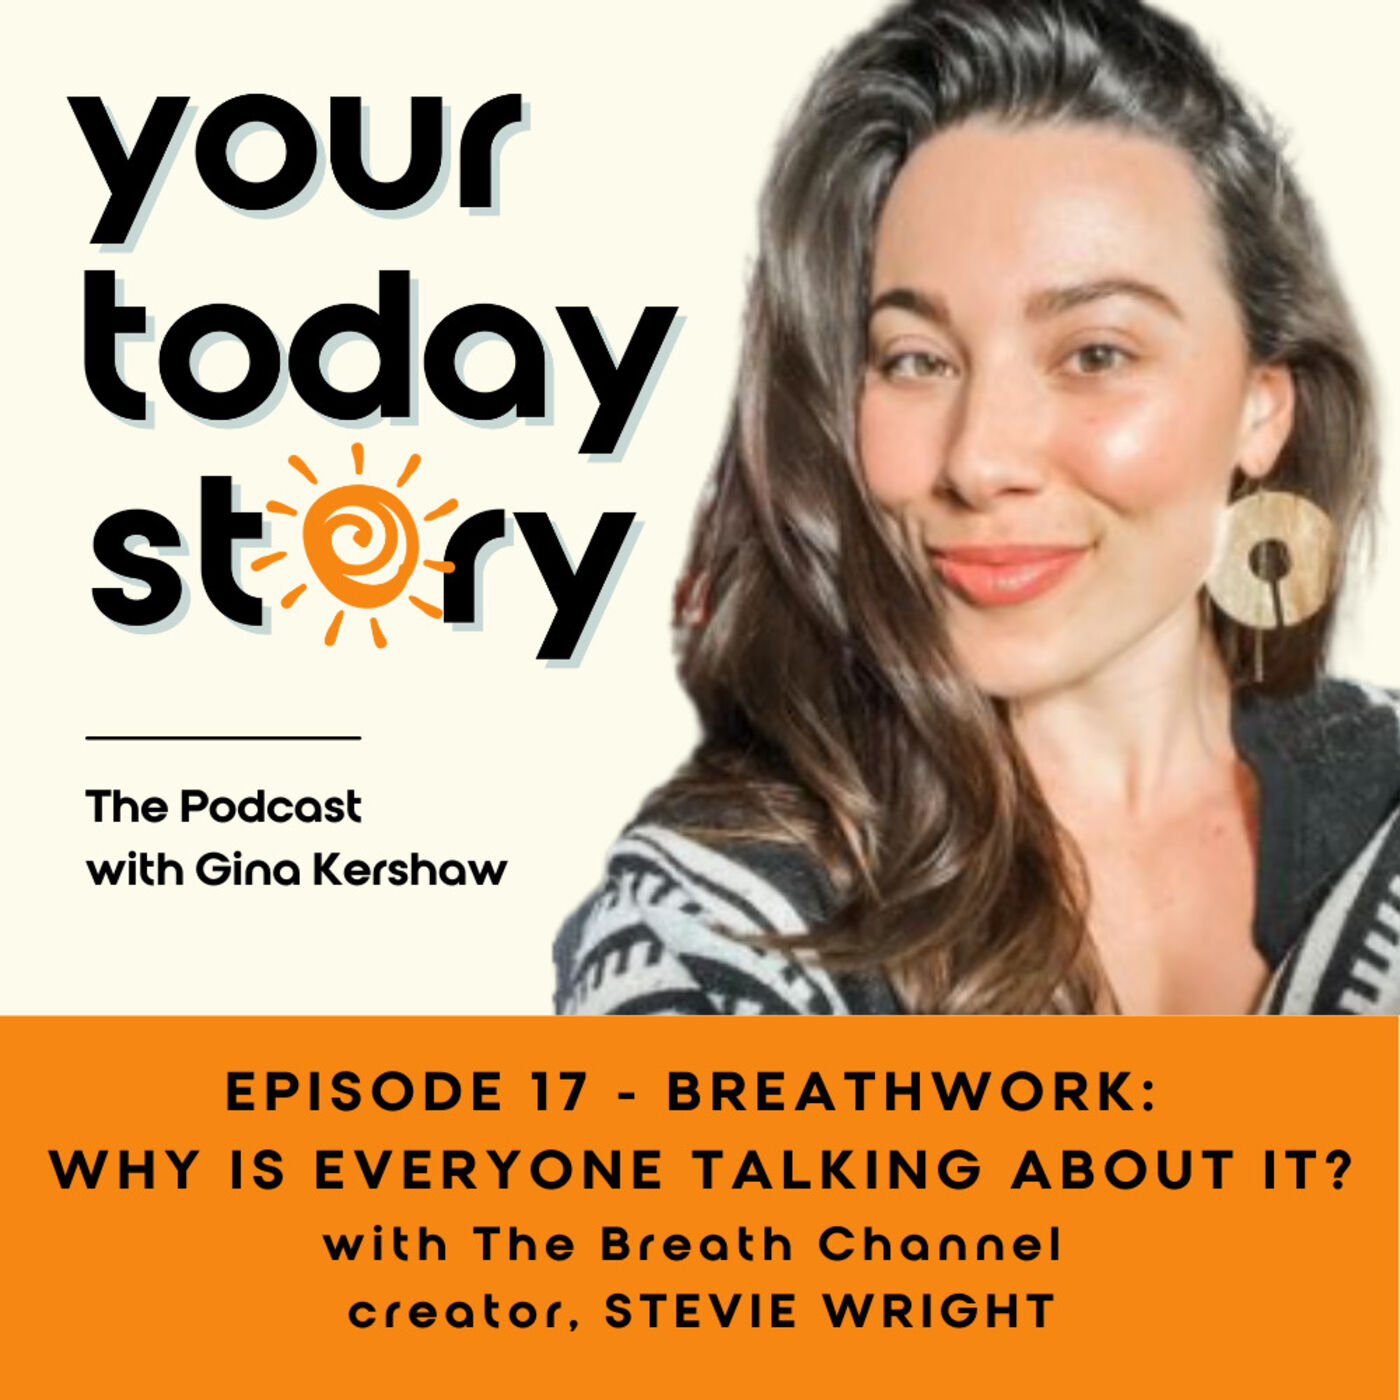 Episode 17: Breathwork: Why Everyone Is Talking About It (with guest Stevie Wright)